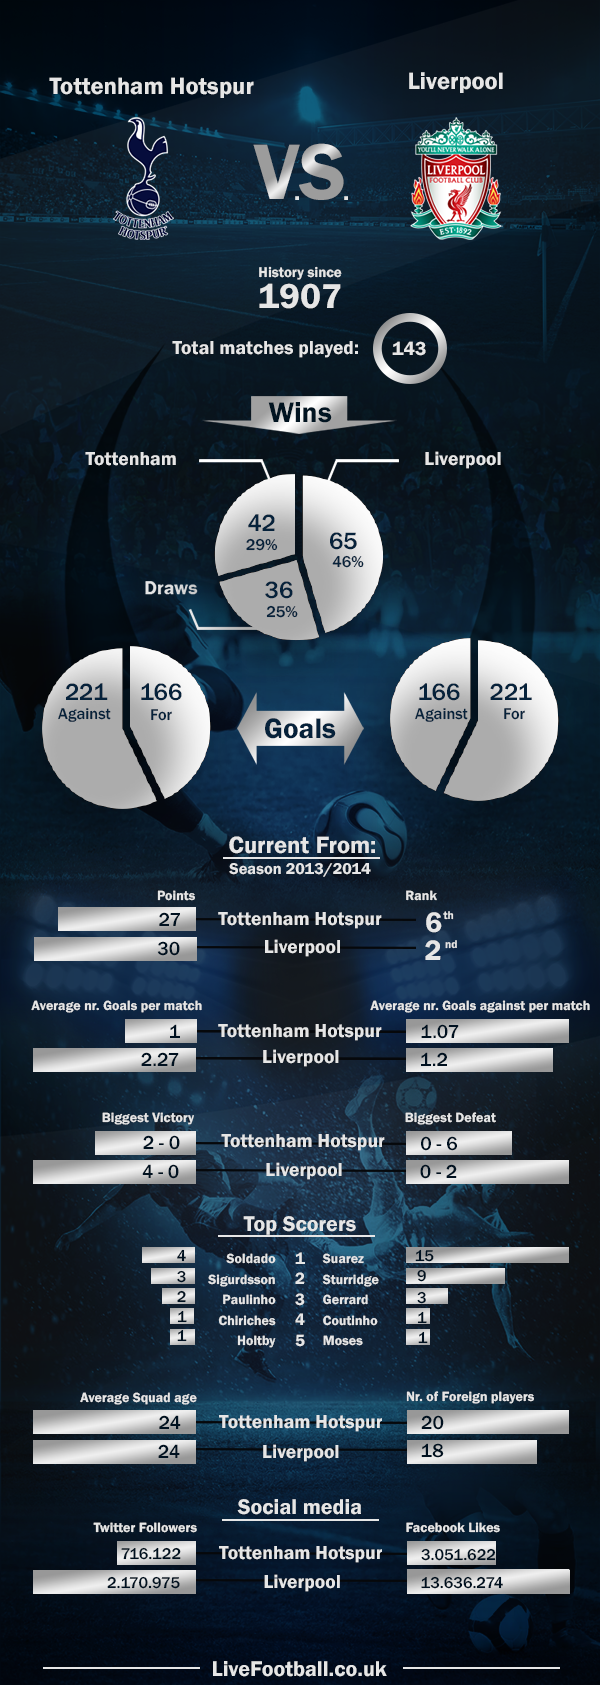 Tottenham-Hotspur-vs-Liverpool-livefootball.co.uk